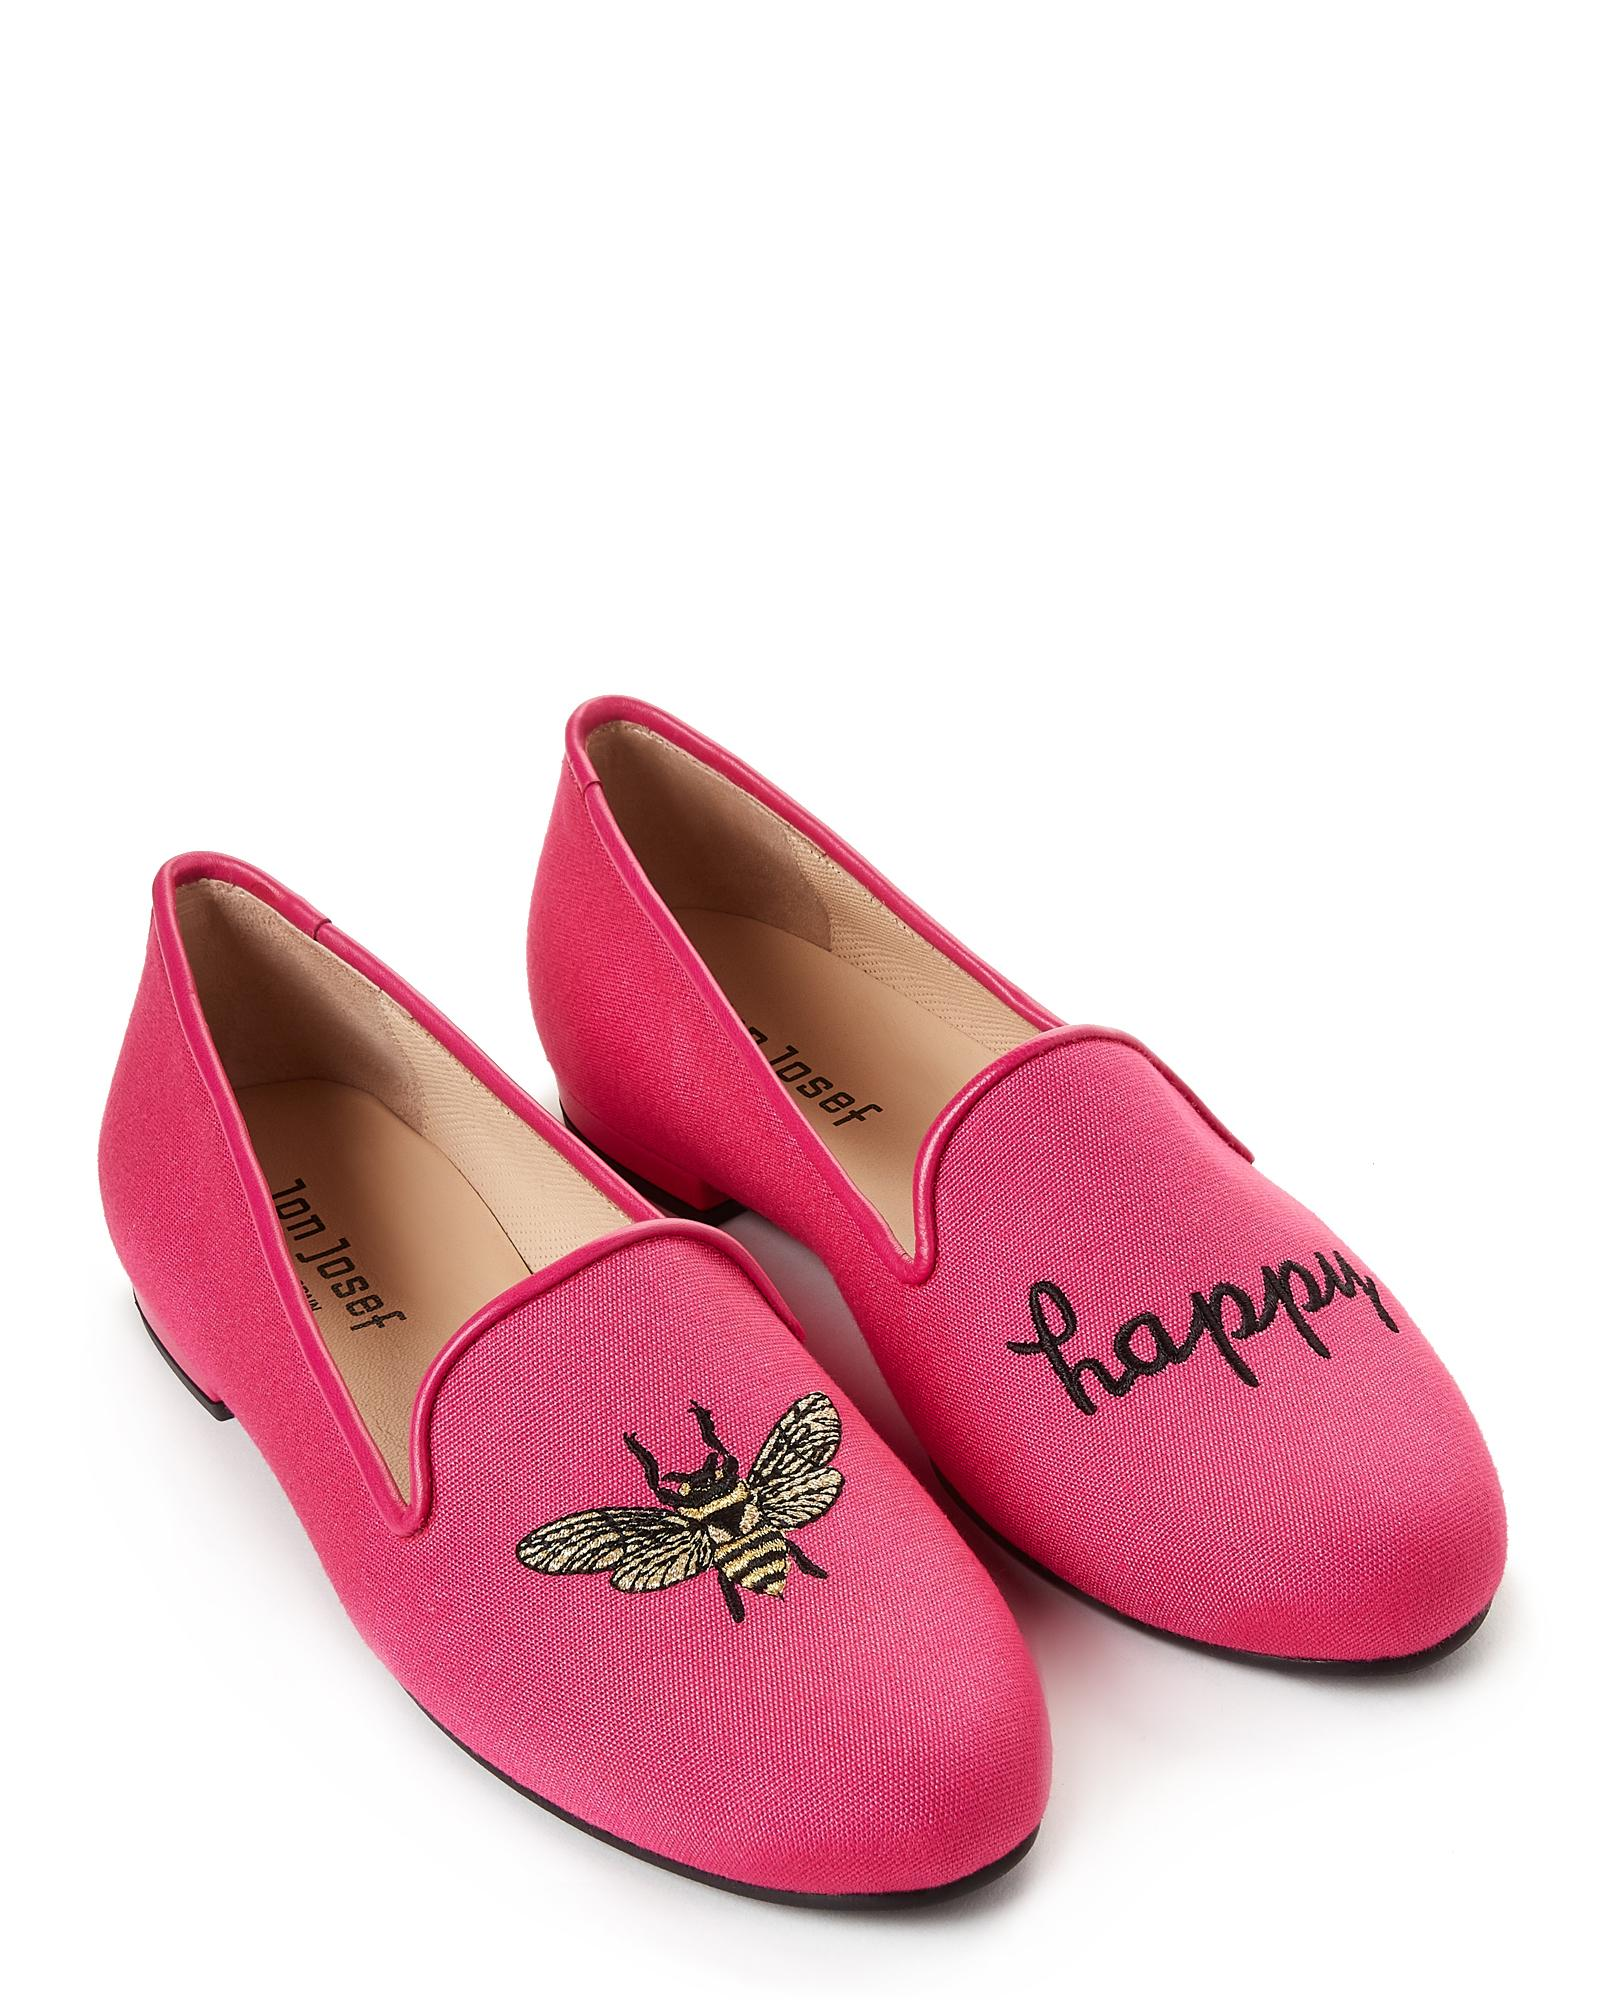 876839775c8 Lyst - Jon Josef Fuchsia Bee Happy Linen Loafers in Pink